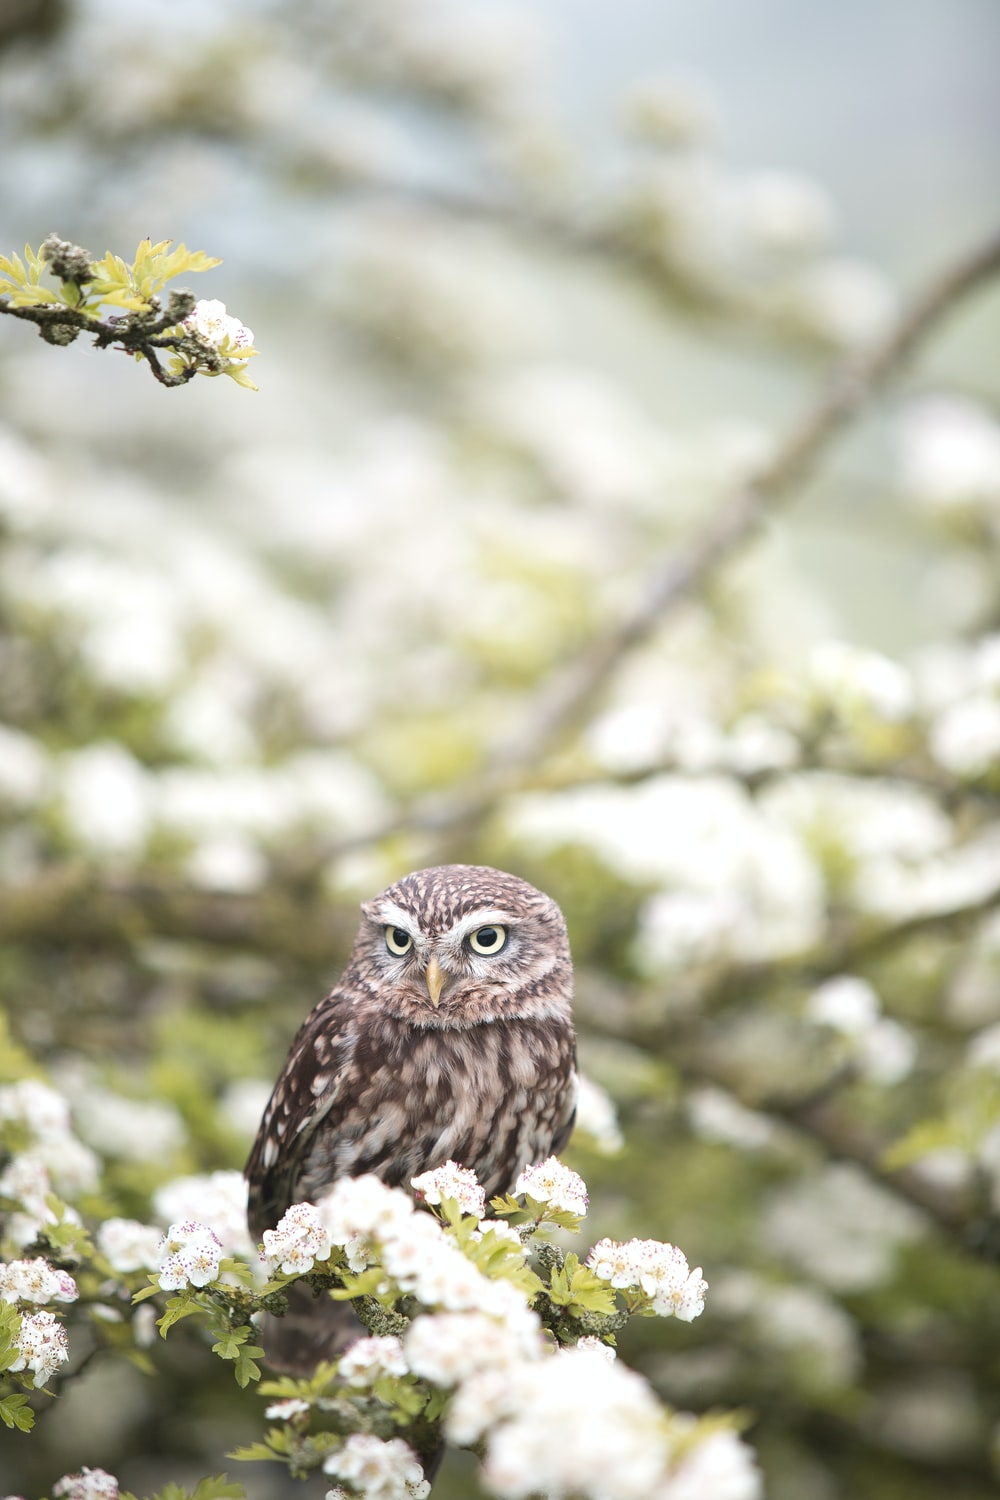 brown owl on tree branch in shallow focus photography